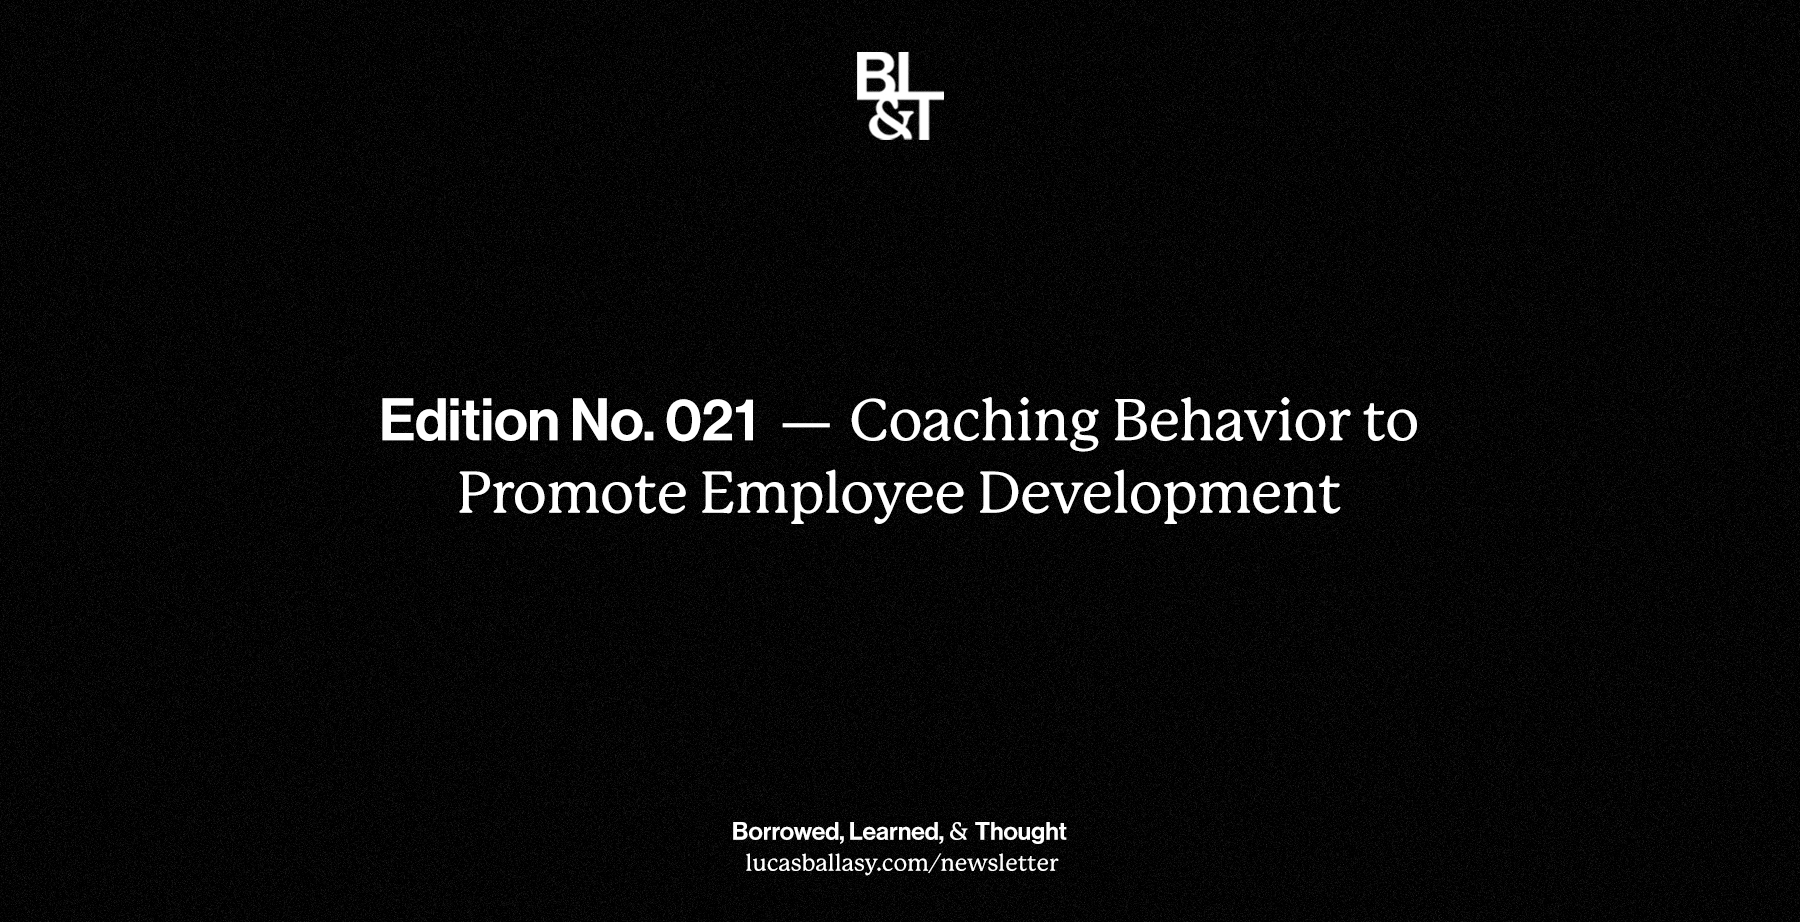 BL&T No. 021: Coaching Behavior to Promote Employee Growth